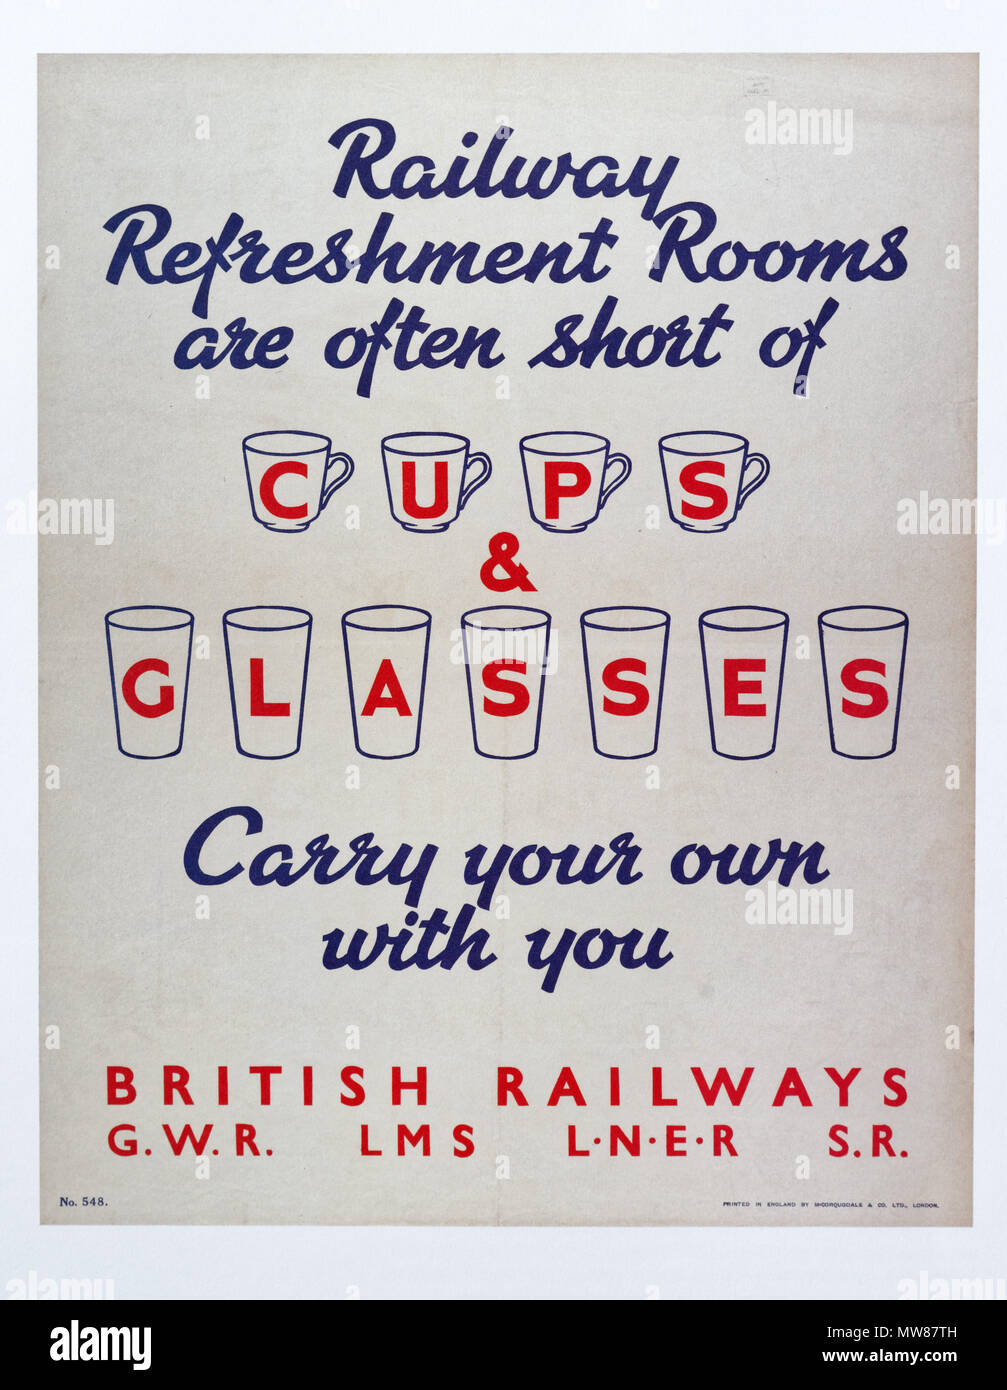 A poster from after the Second World War encouraging people to bring their own cups and glasses as the railway companies were short of supplies - Stock Image